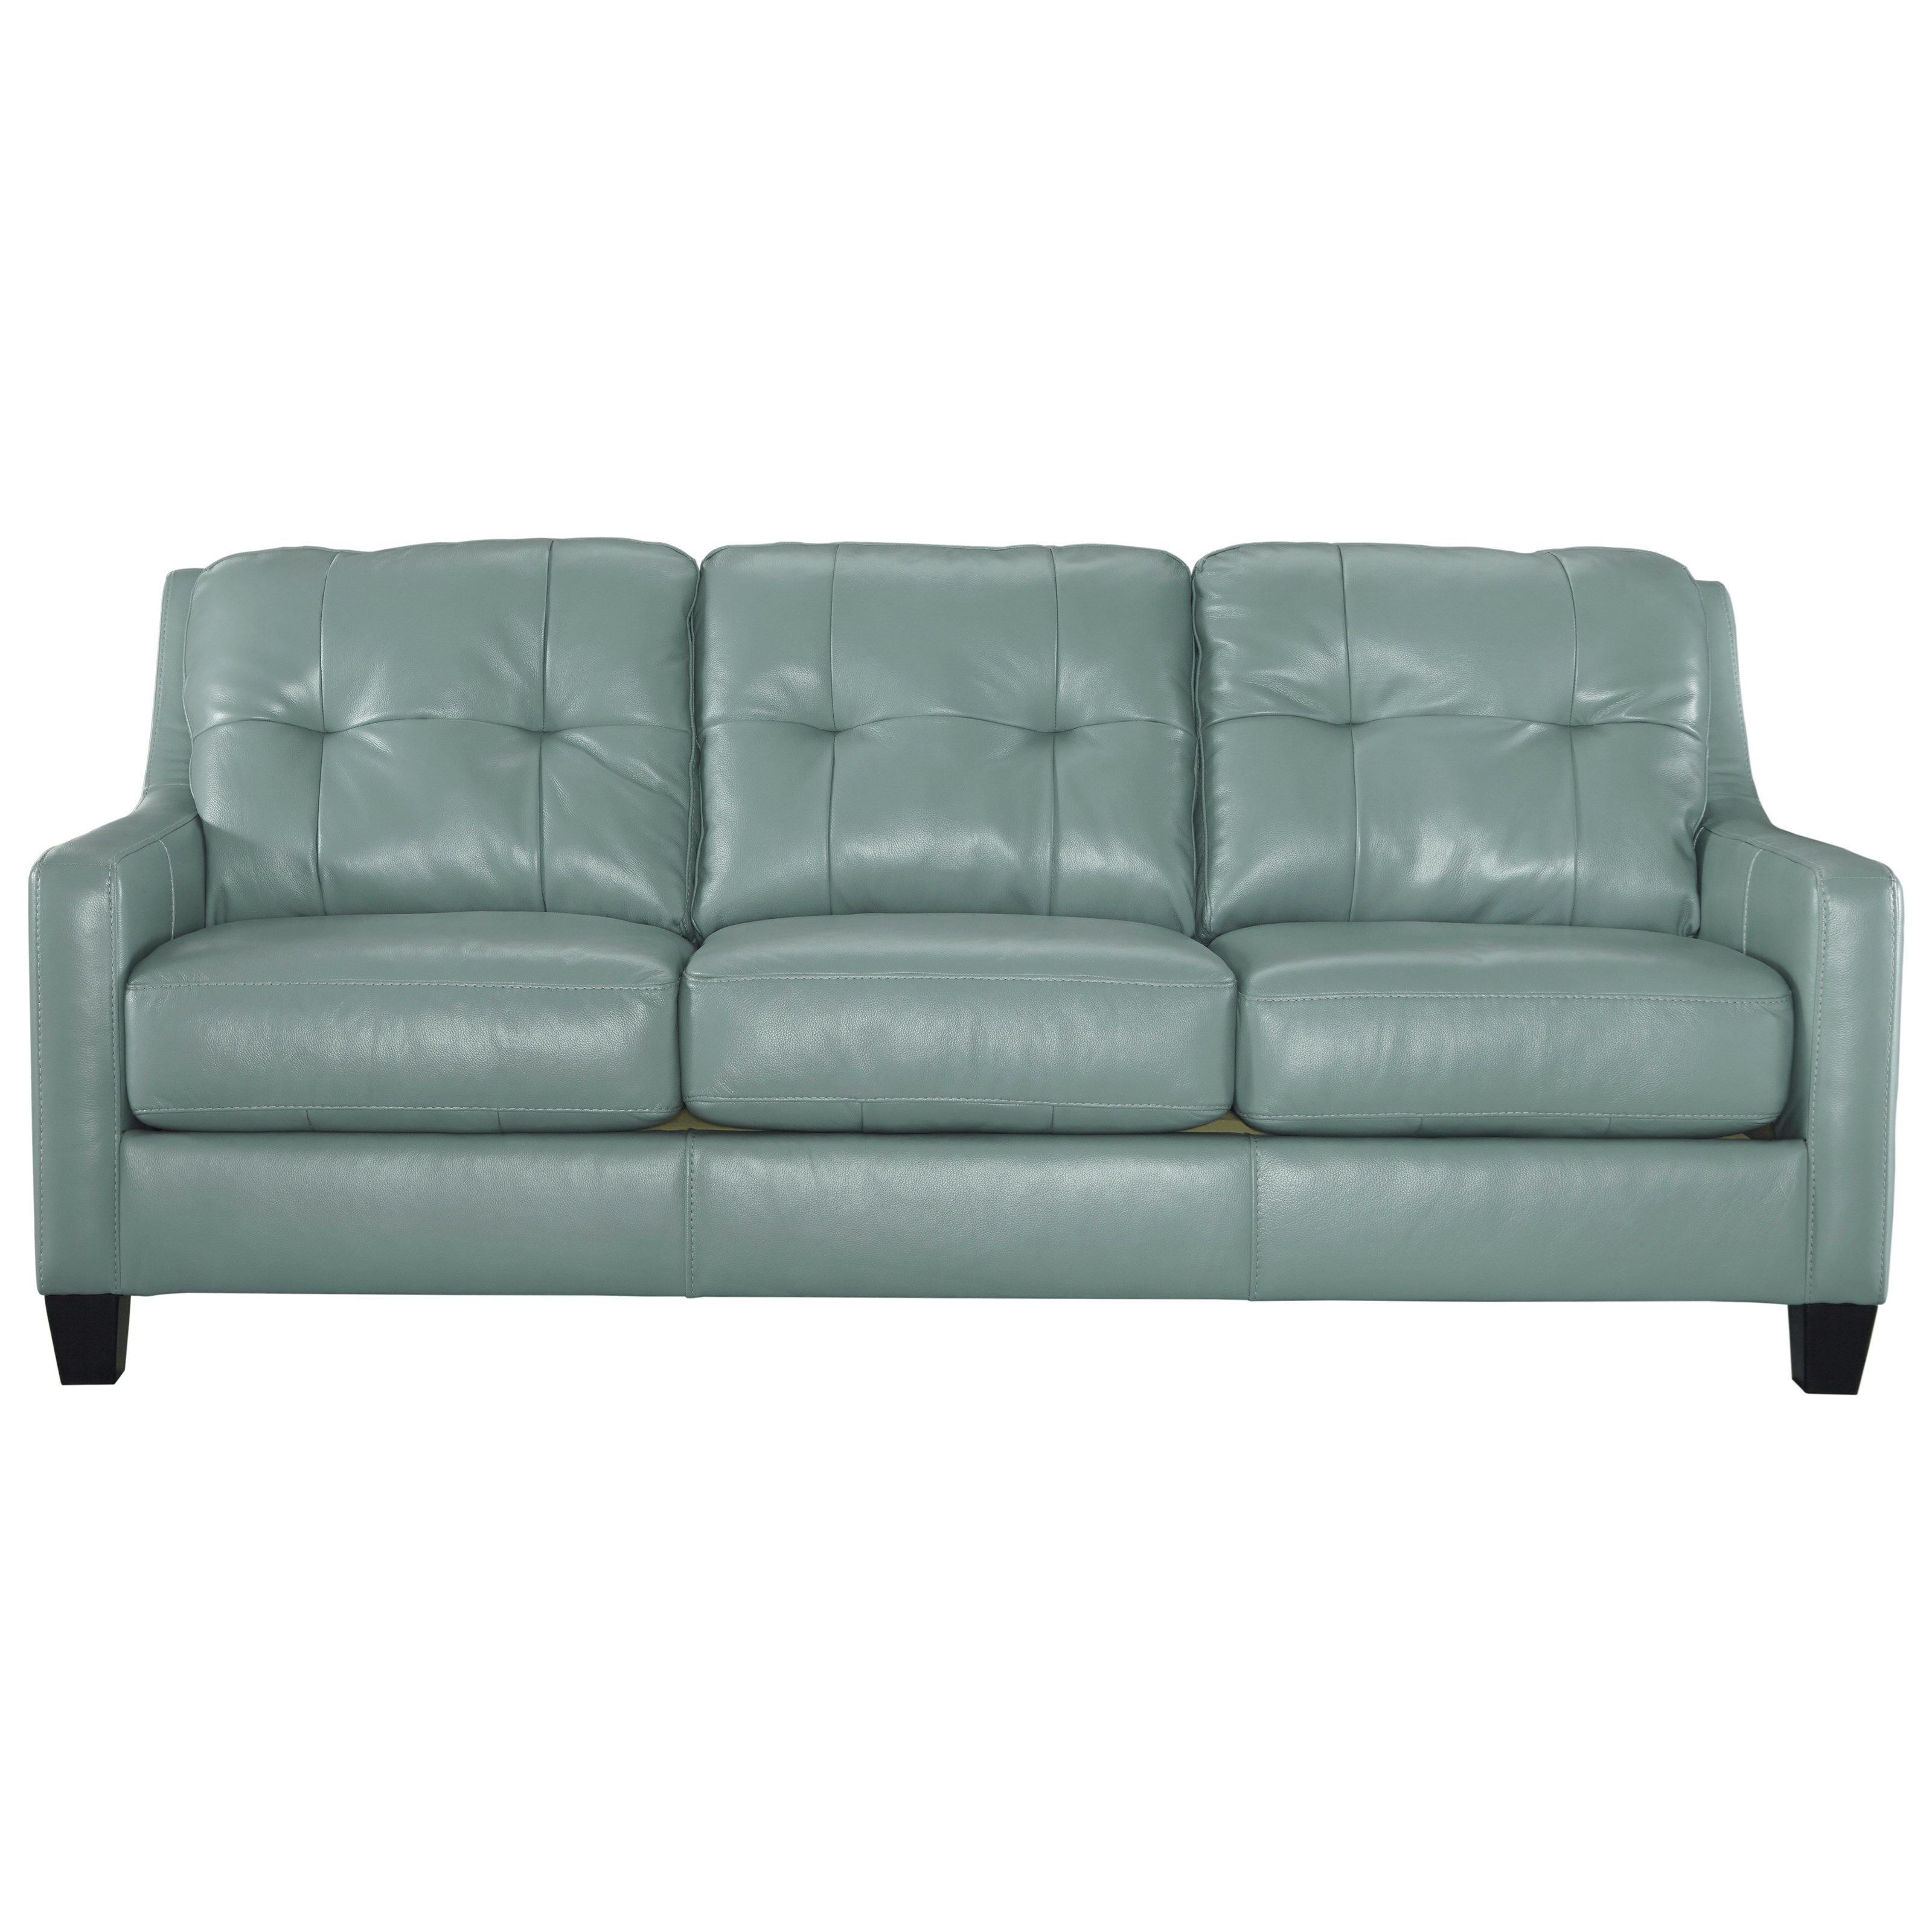 Contemporary Leather Match Sofa With Tufted Back Track Arms By